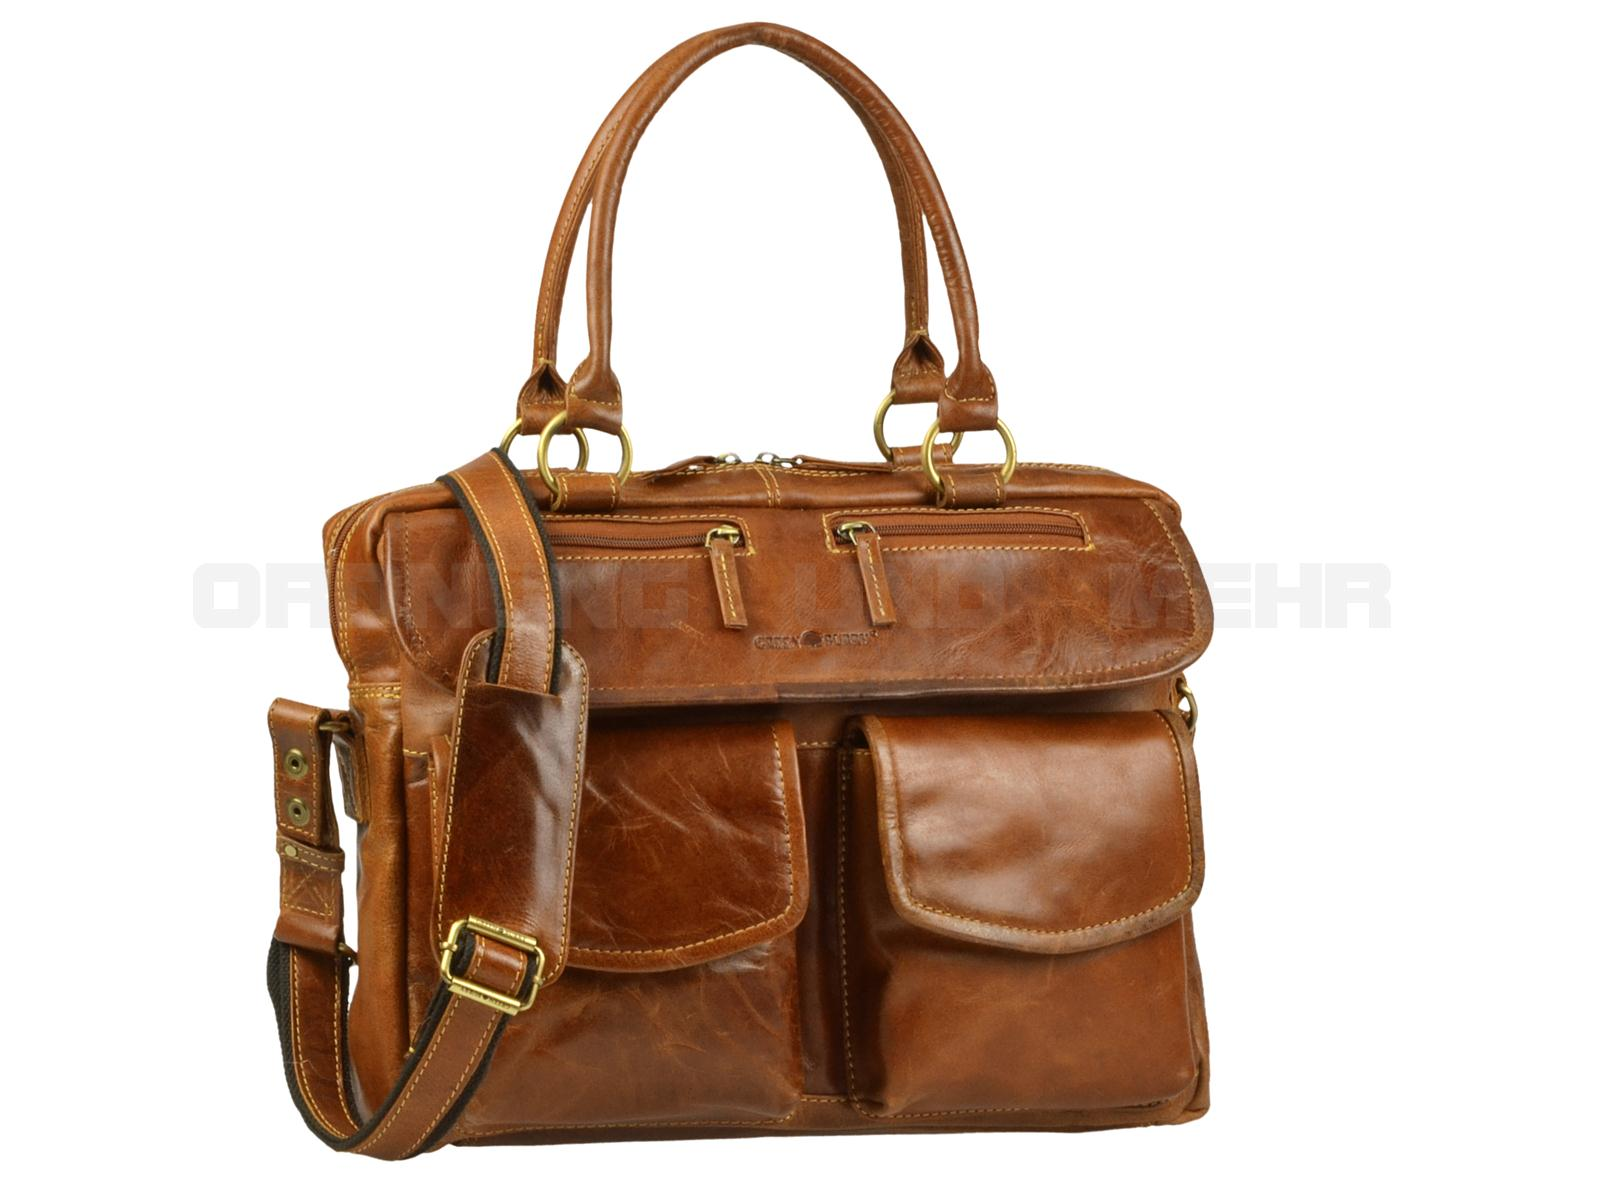 Greenburry EXPEDITION Leder - Damen Businesstasche Aktentasche Lehrertasche - cognacbraun 564-24